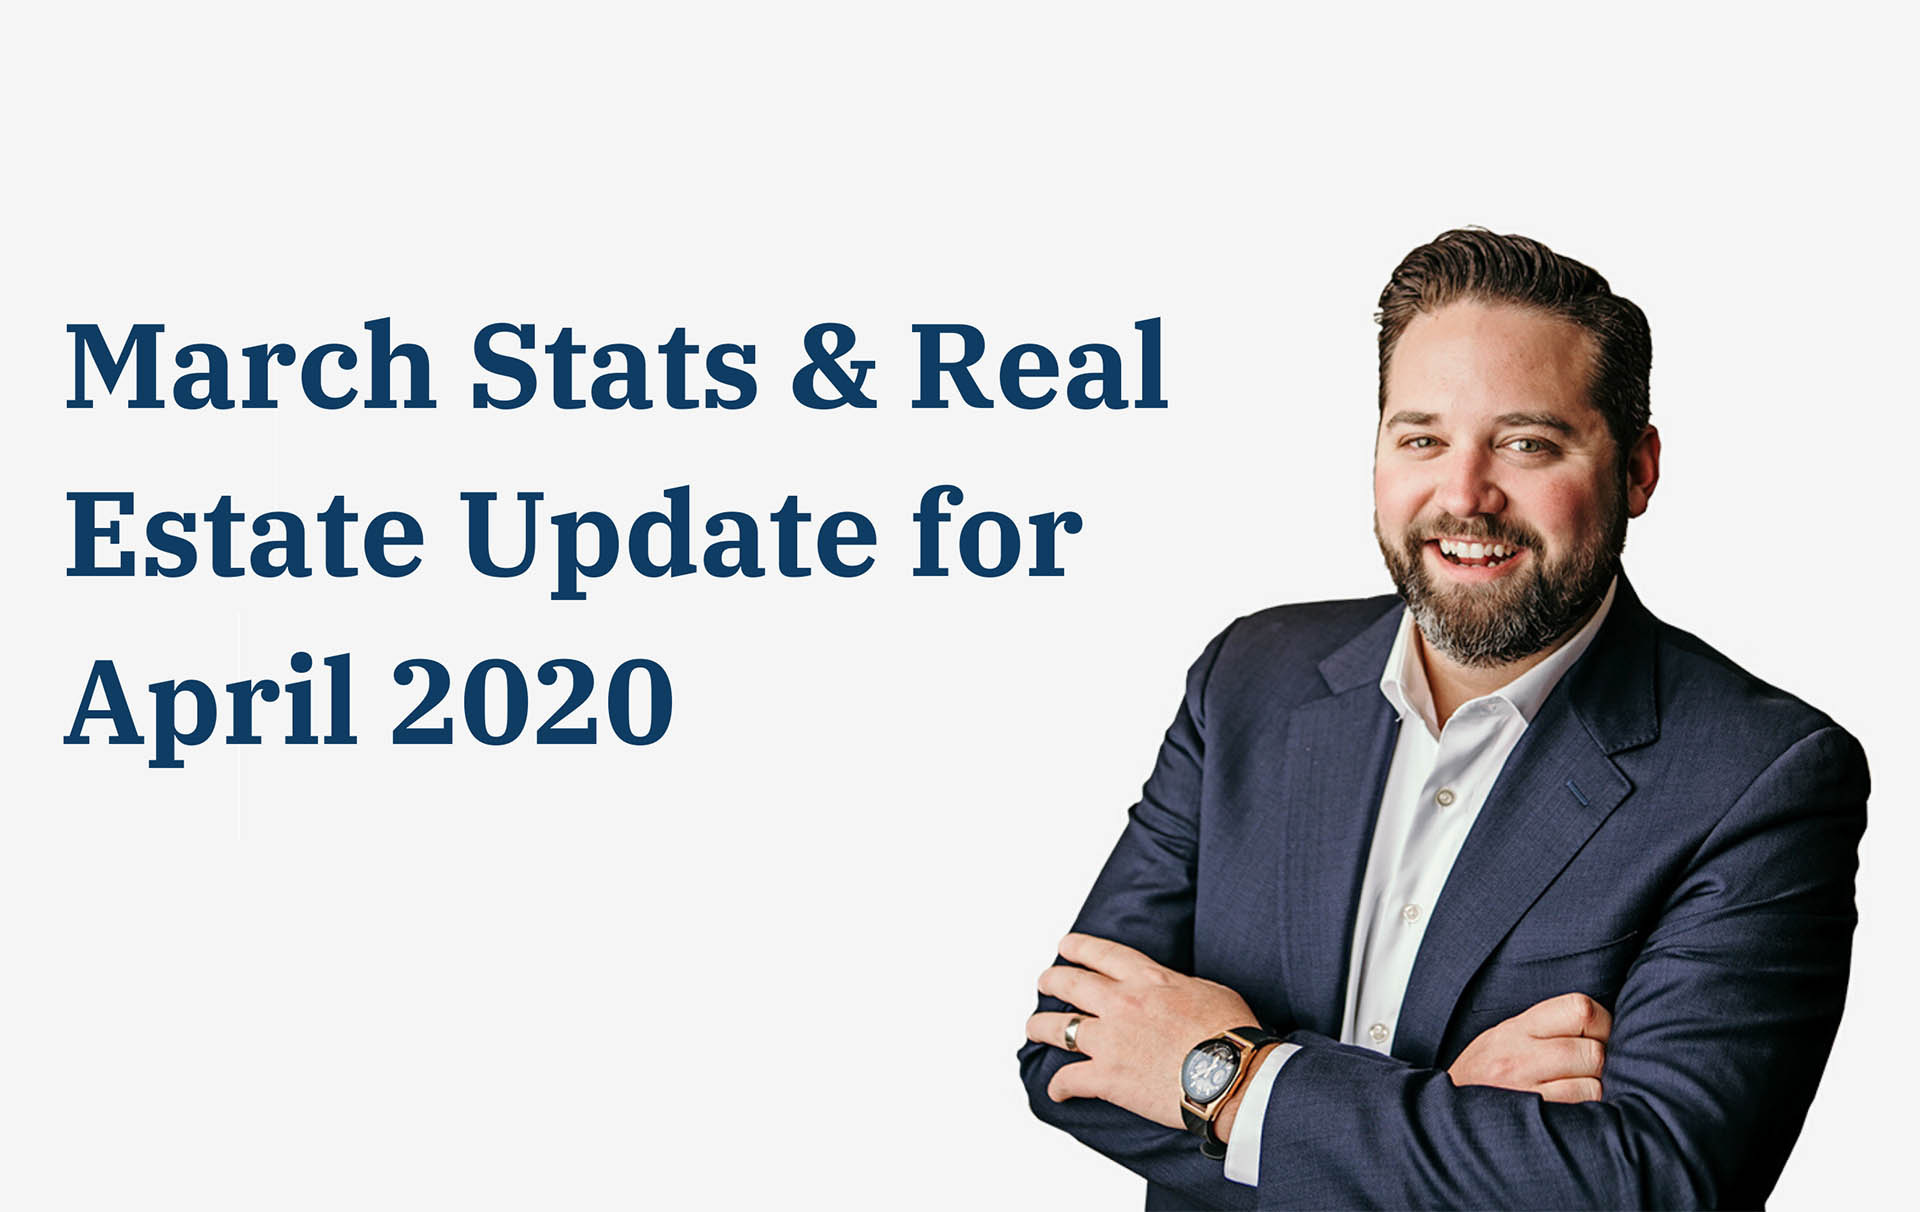 March stats and realestate update for april 2020